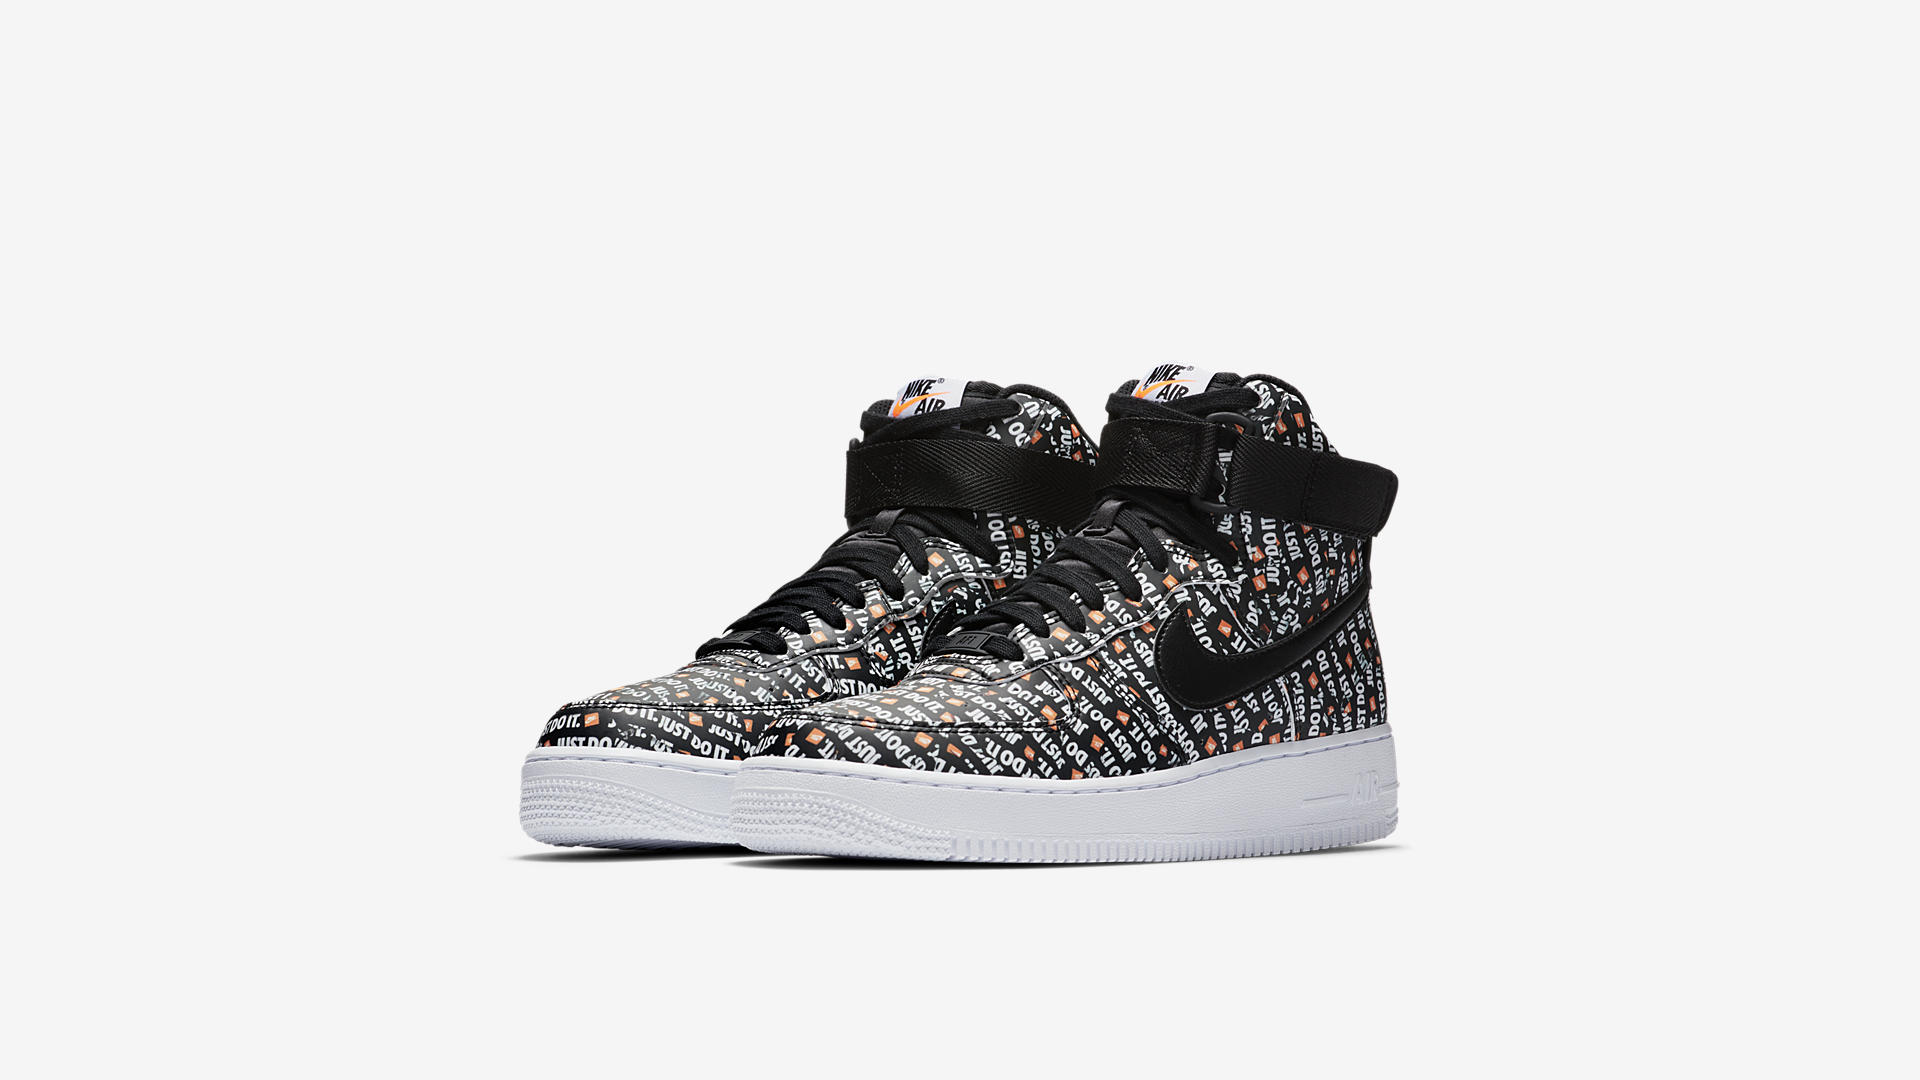 Nike Air Force High Just Do It Black (AO5138-001)